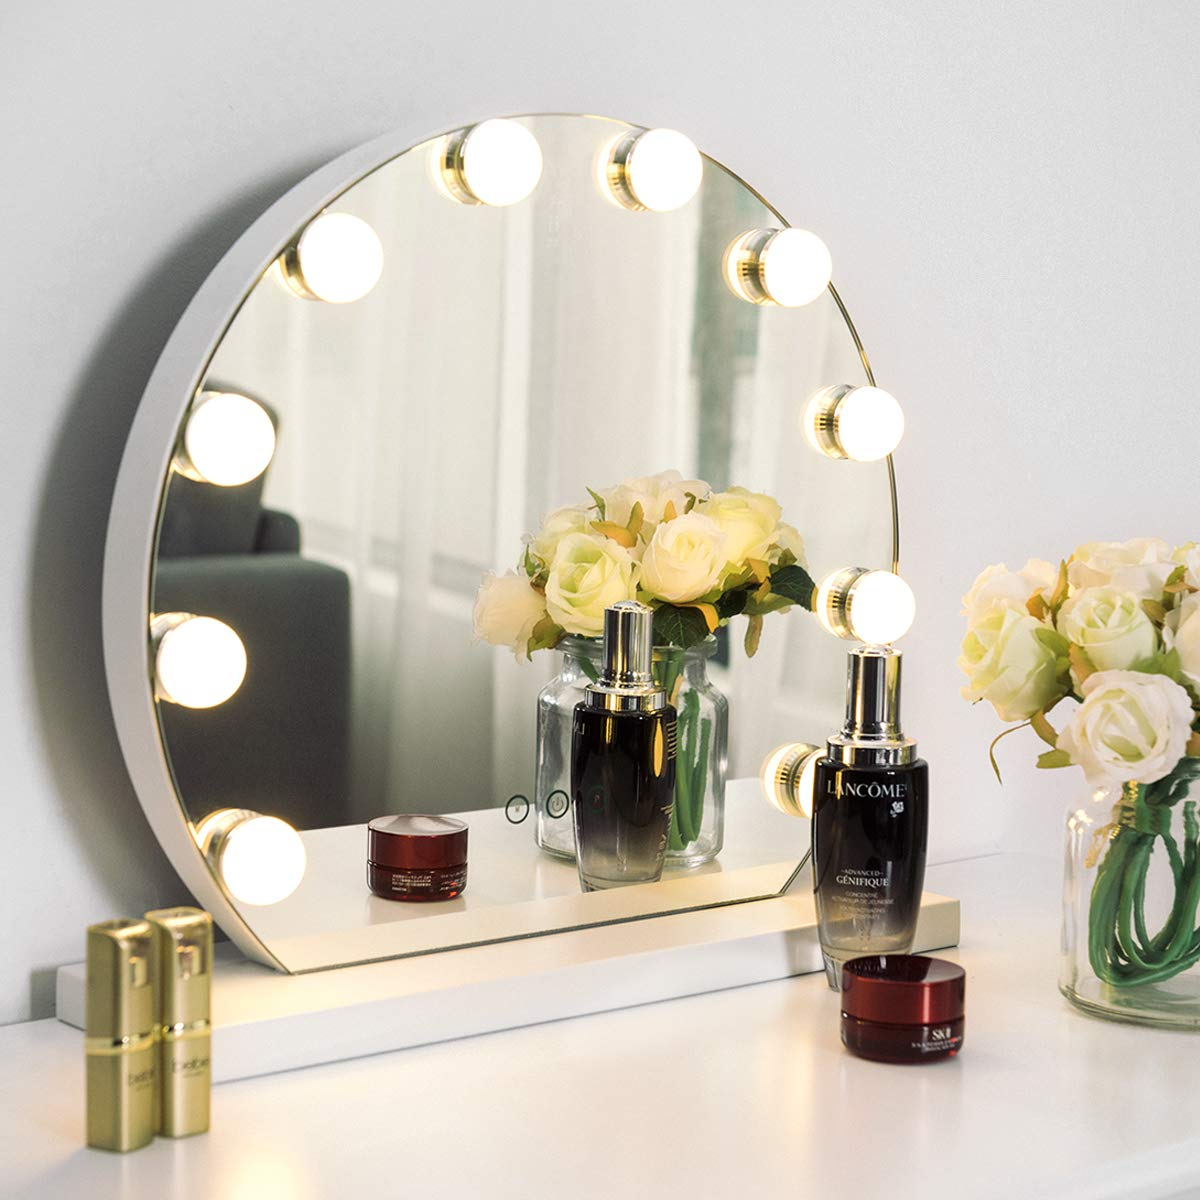 Tangkula Makeup Vanity Mirror with Light, Hollywood Style Mirror with Base Touch Screen High Definition Cosmetic Mirror with 10 LED Dimmable Bulbs 3 Color Lighting Modes, Tabletop Frameless Mirror by Tangkula